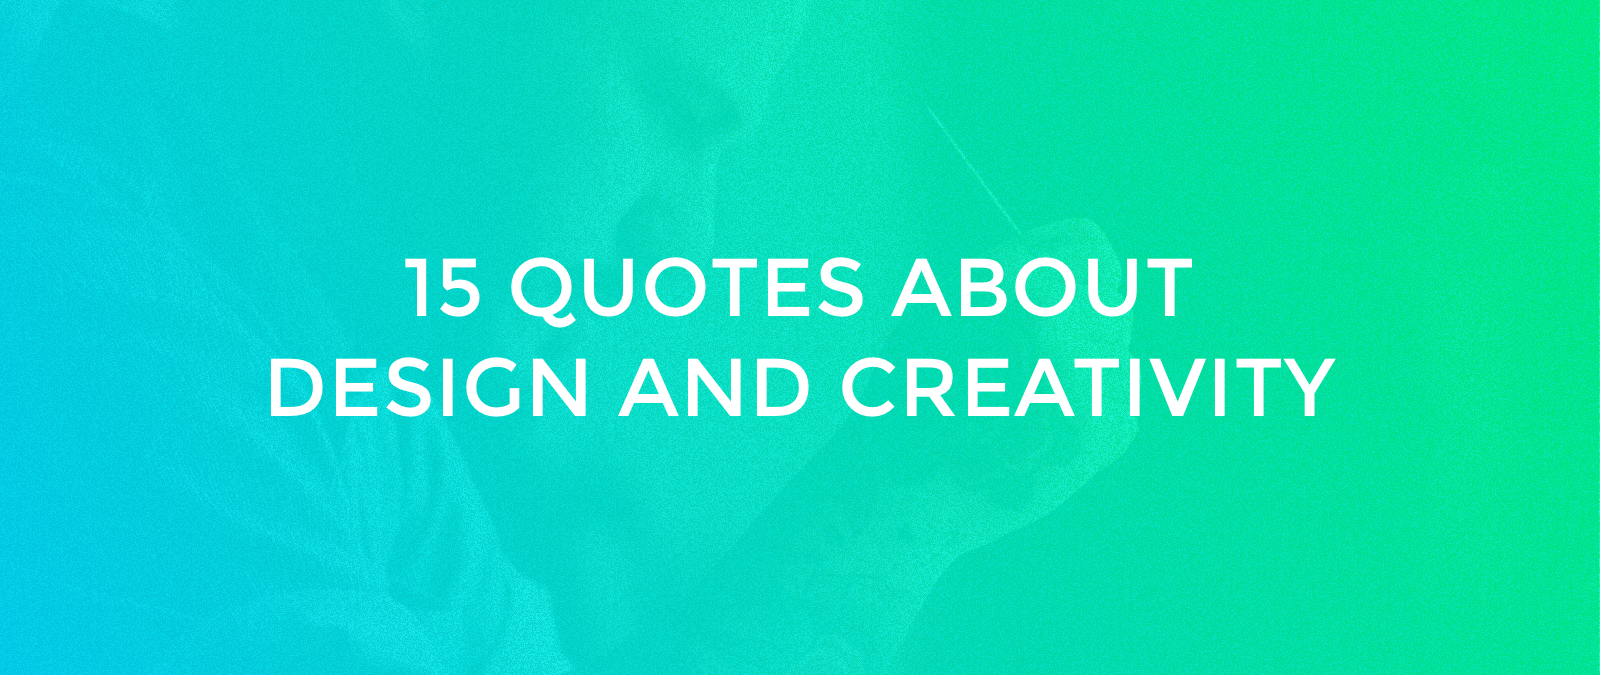 Design Quote 15 Quotes About Design And Creativity  Muzli Design Inspiration